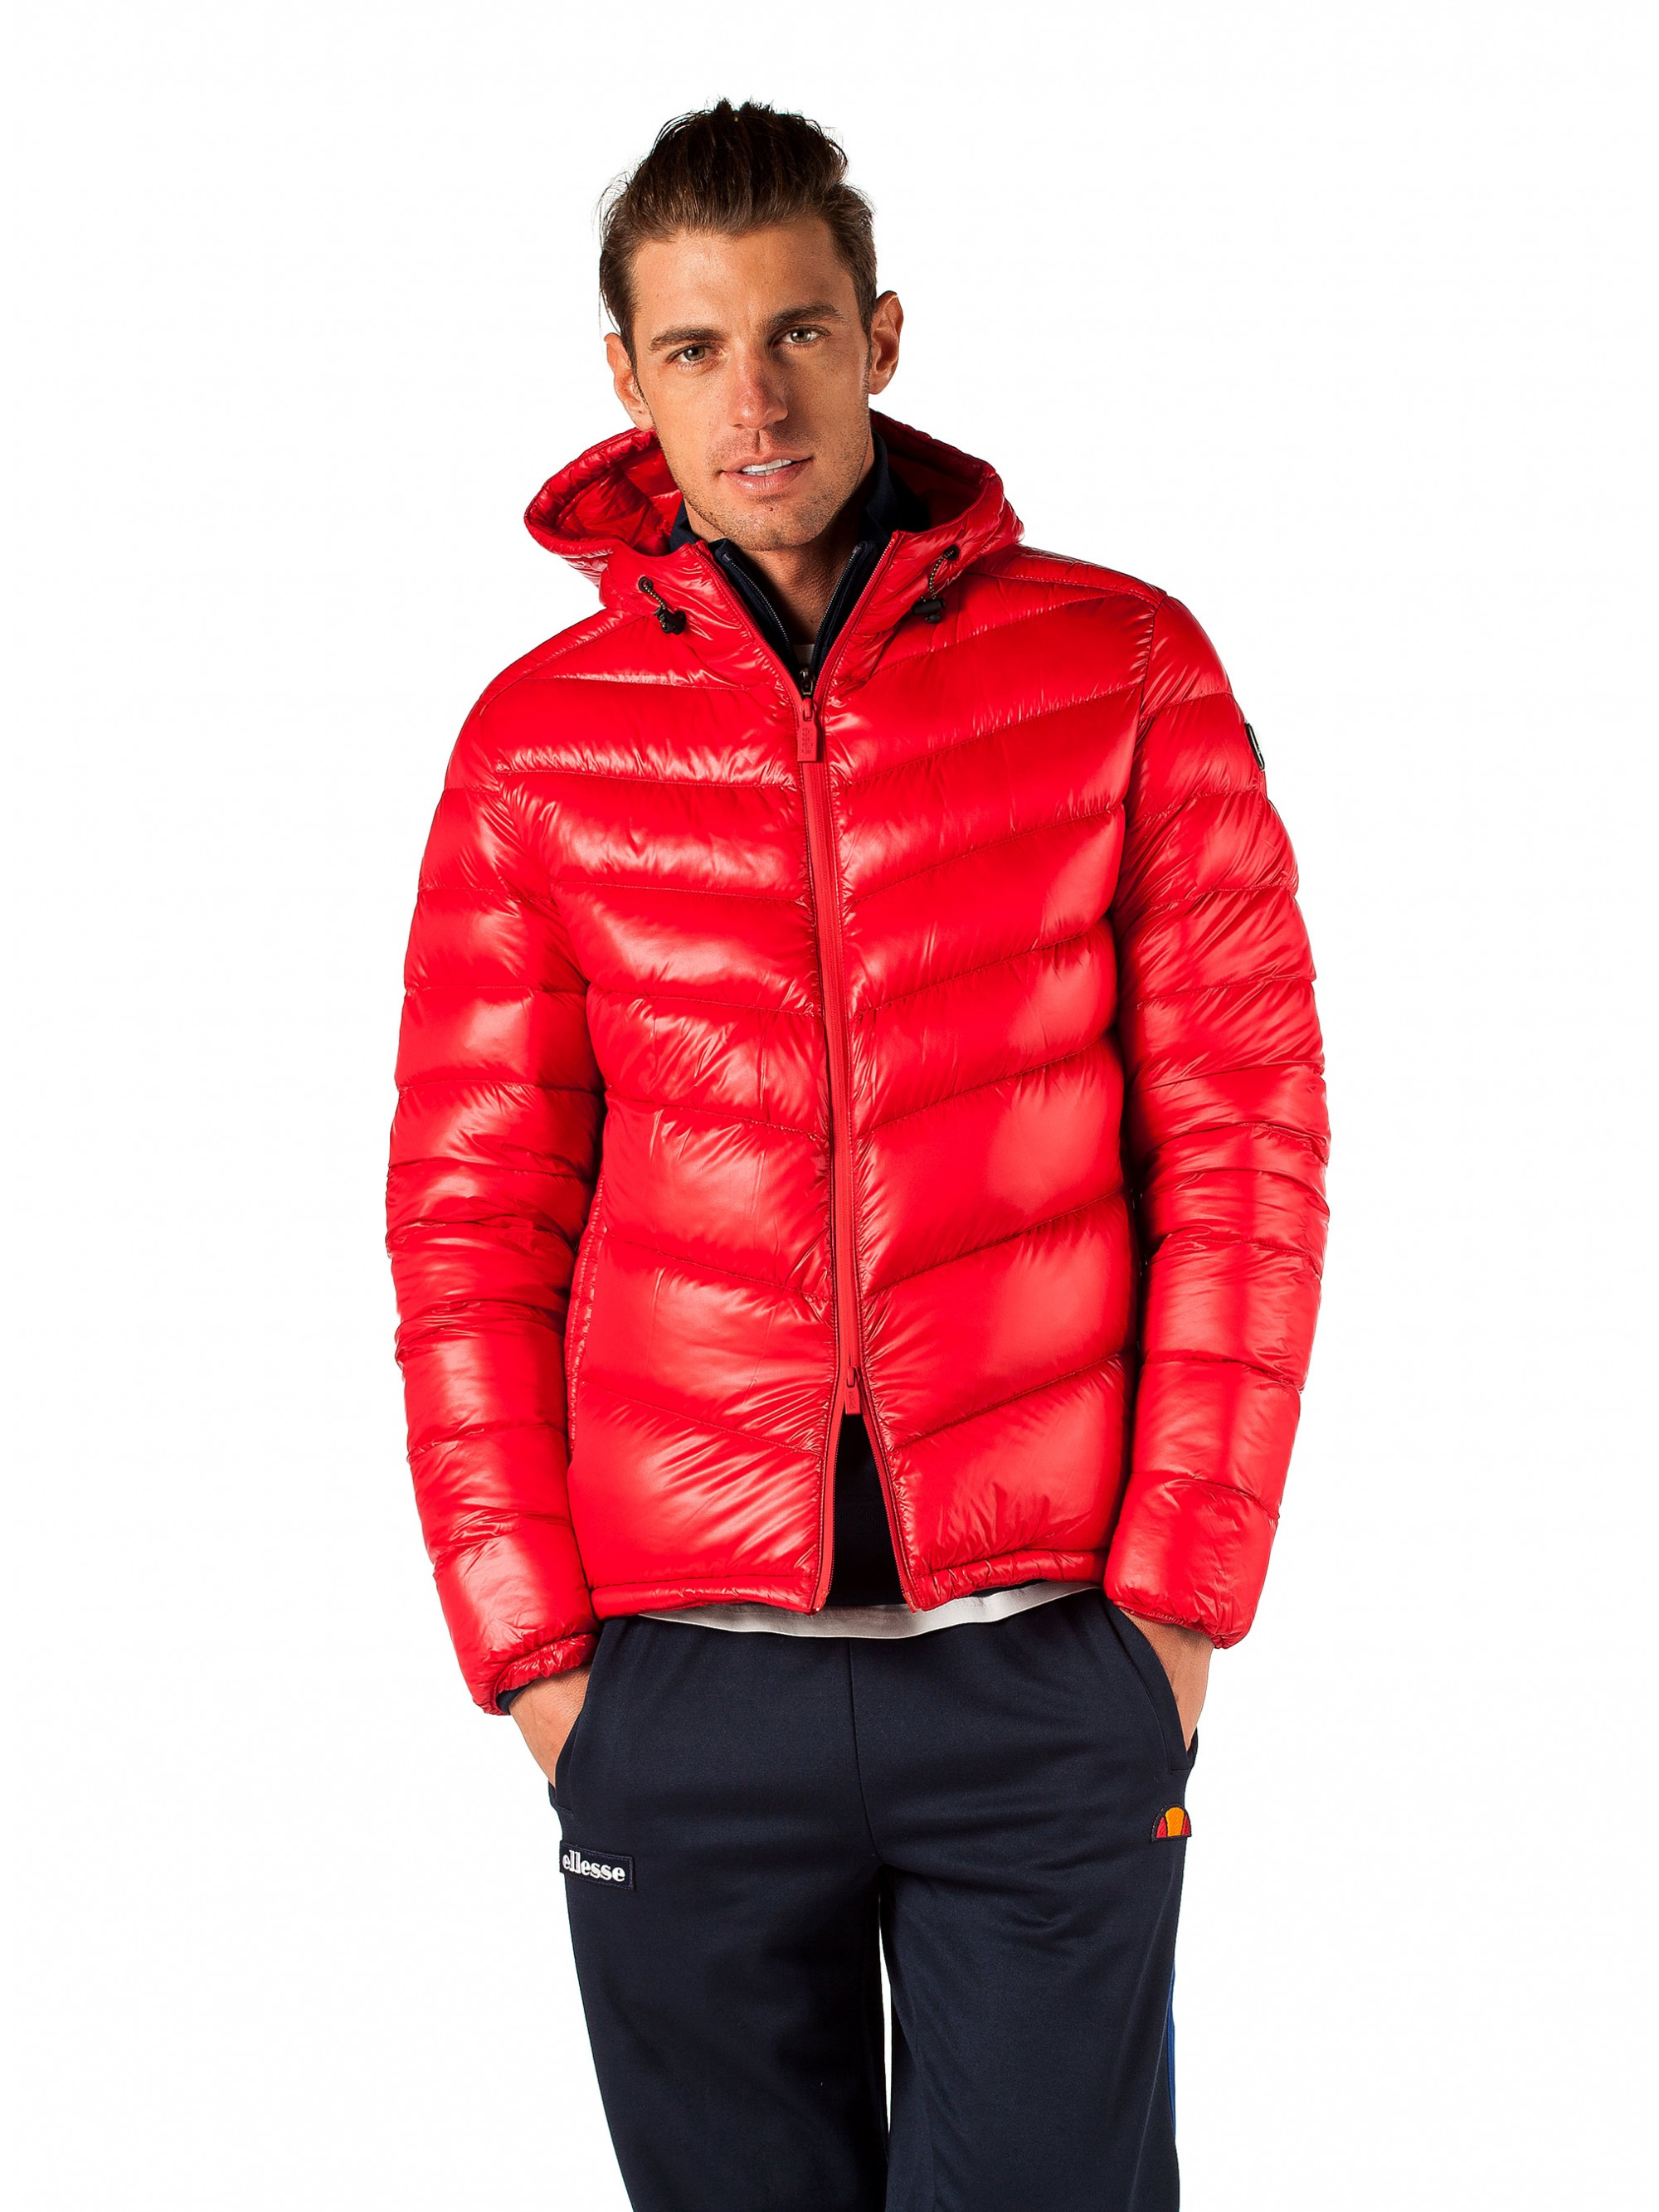 official photos d4de1 ebff0 Ciesse Piumini Down Jacket Levar-Red - Outlet